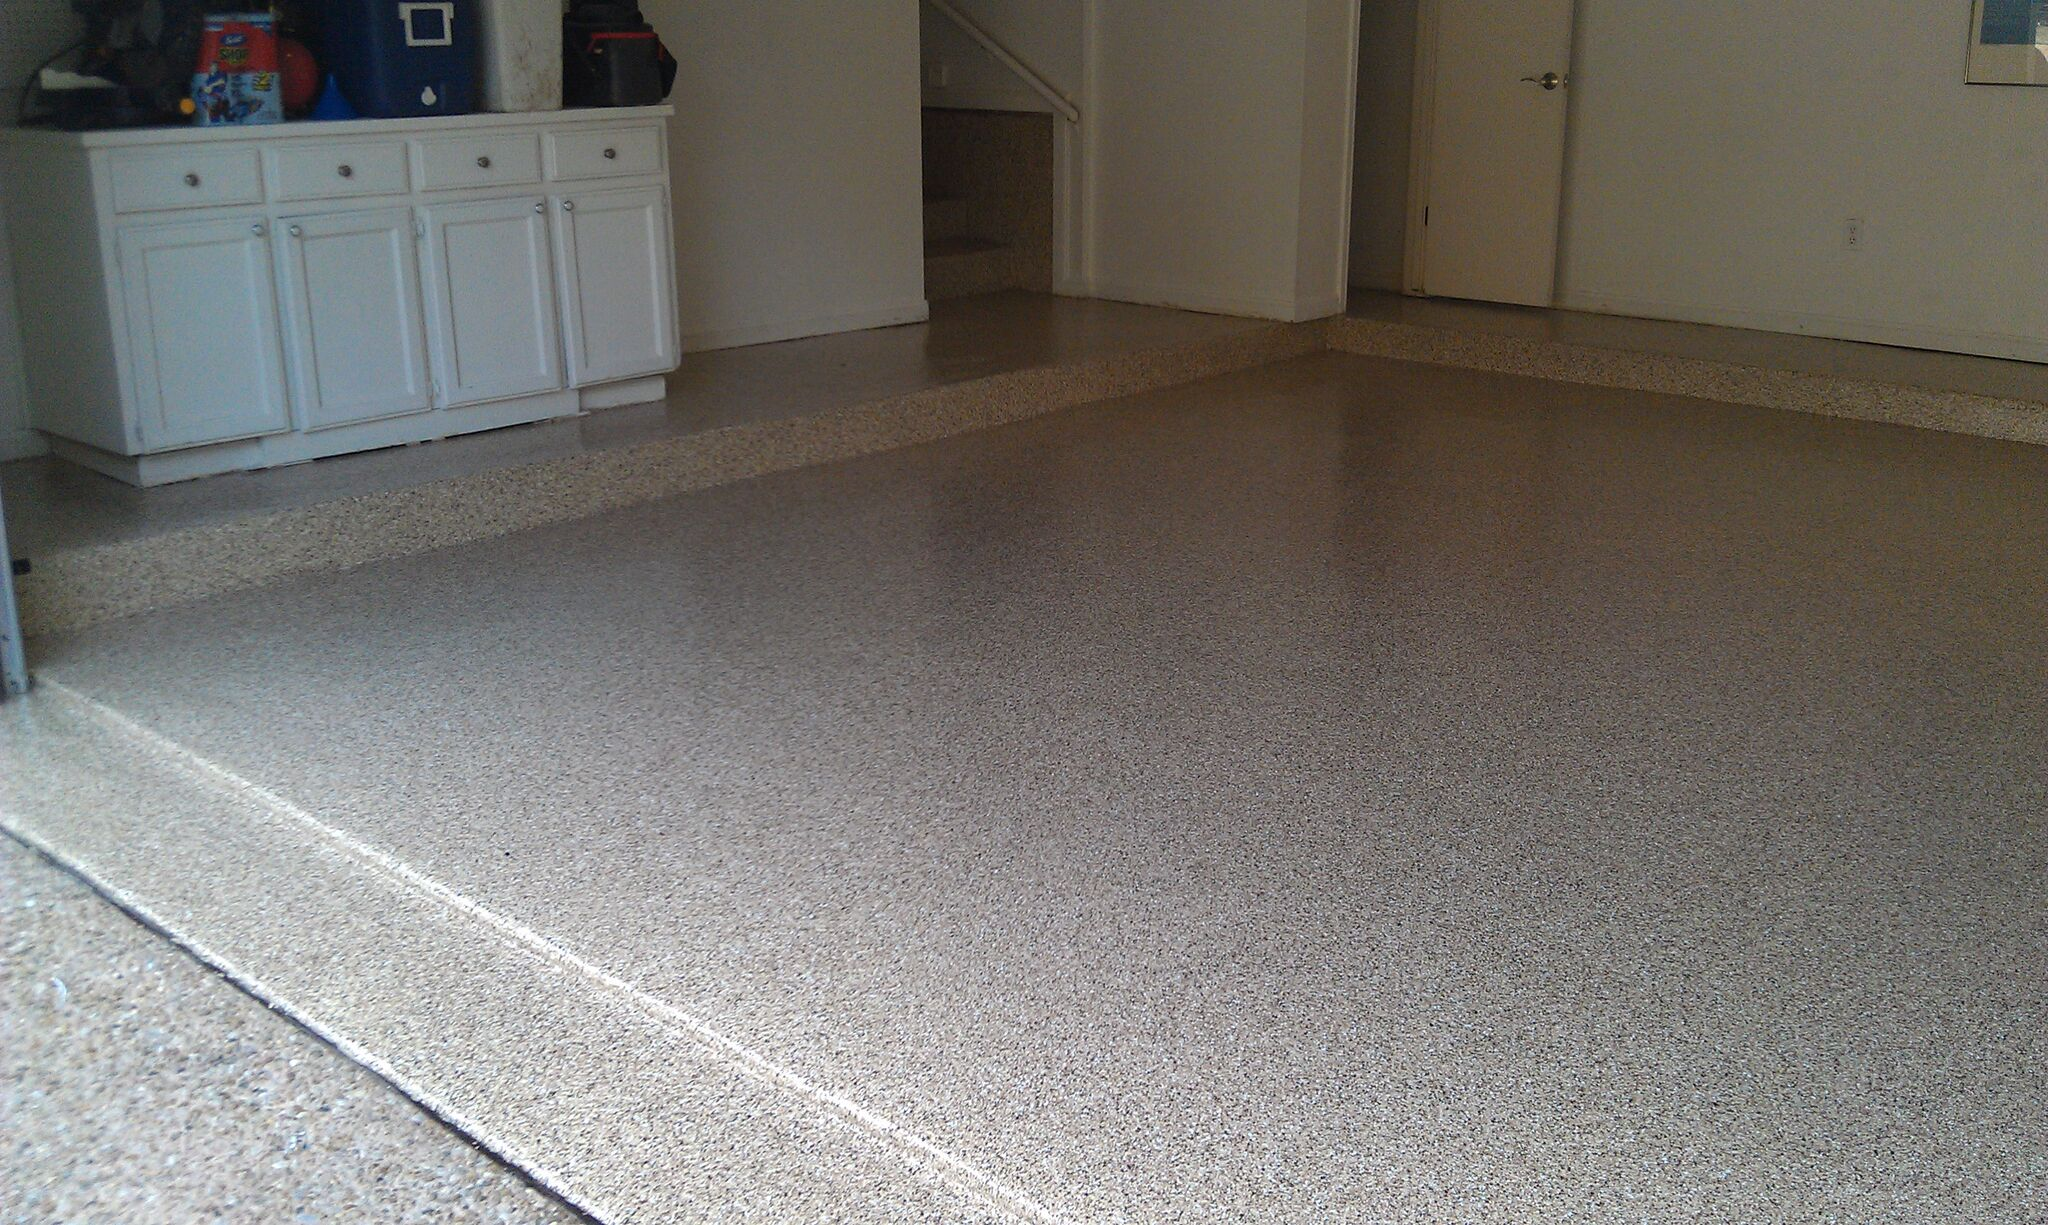 Garage Floor Epoxy Steps Epoxy Or Urethane Coatings For Garage Floors Big Red Decorative